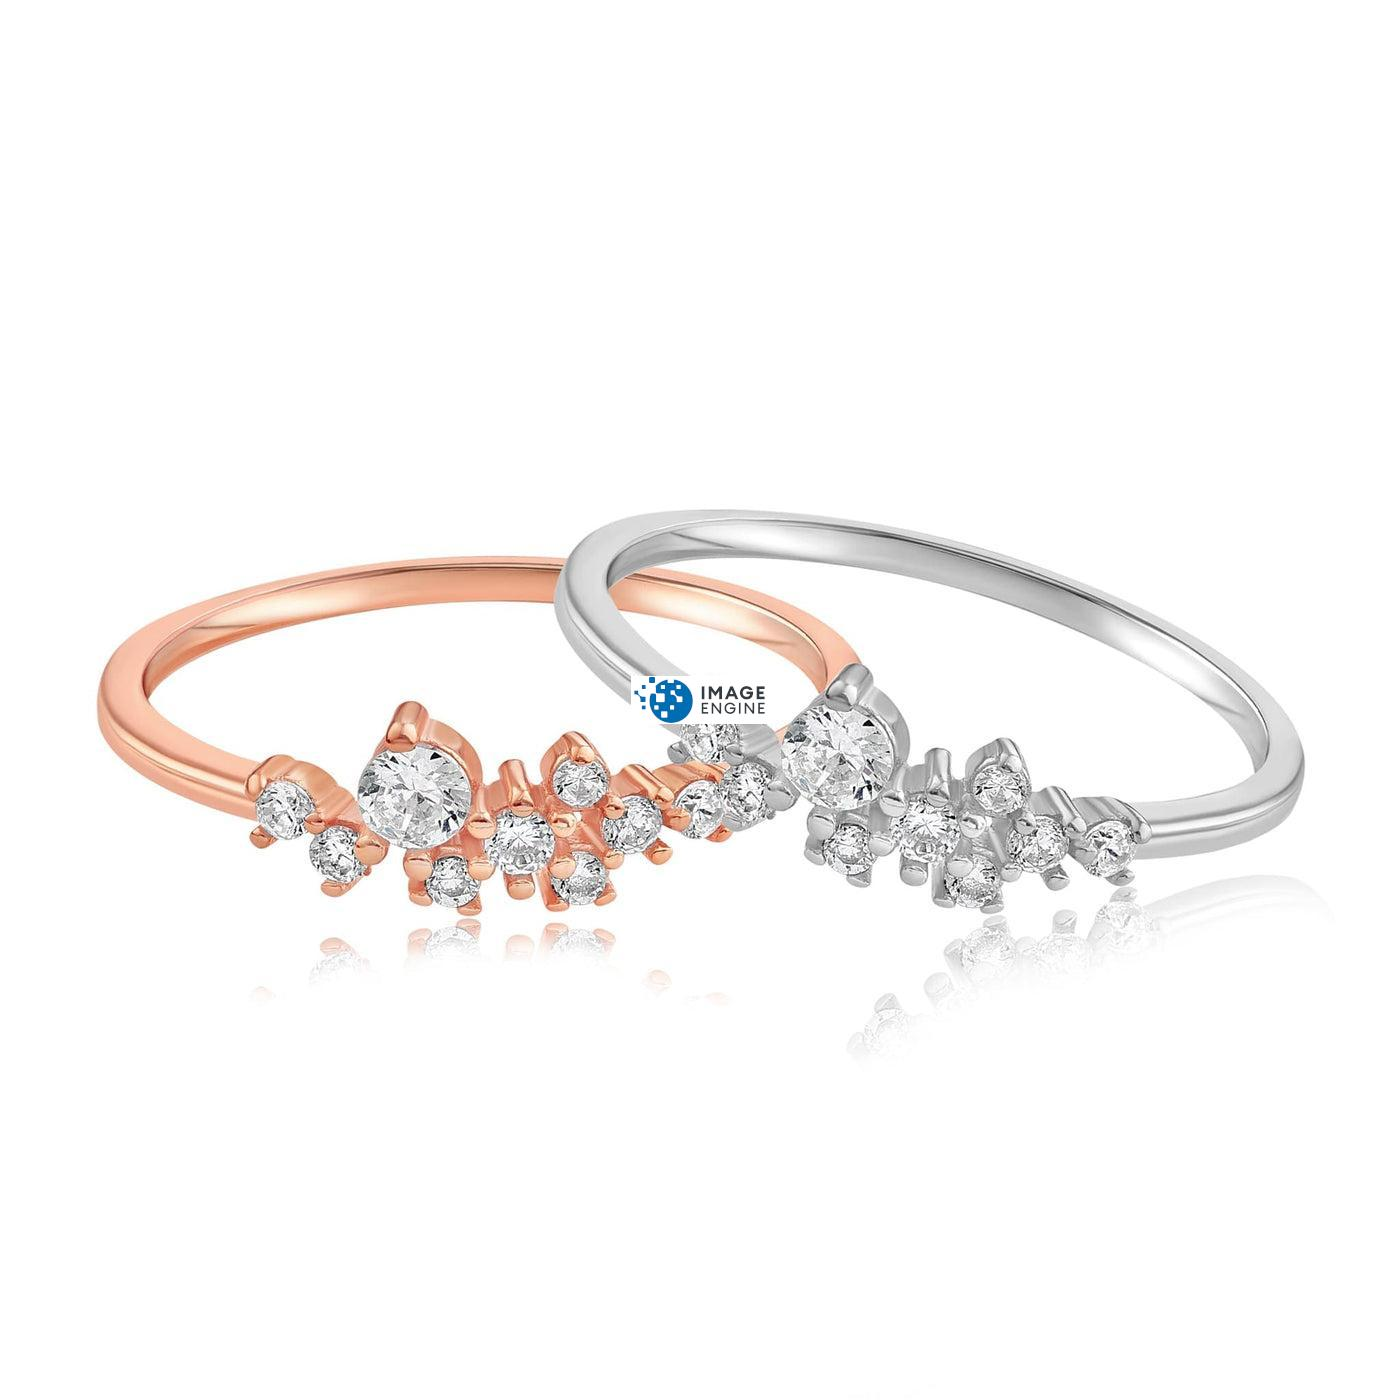 Sasha Sparkle Ring - Front View Side by Side - 18K Rose Gold Vermeil and 925 Sterling Silver